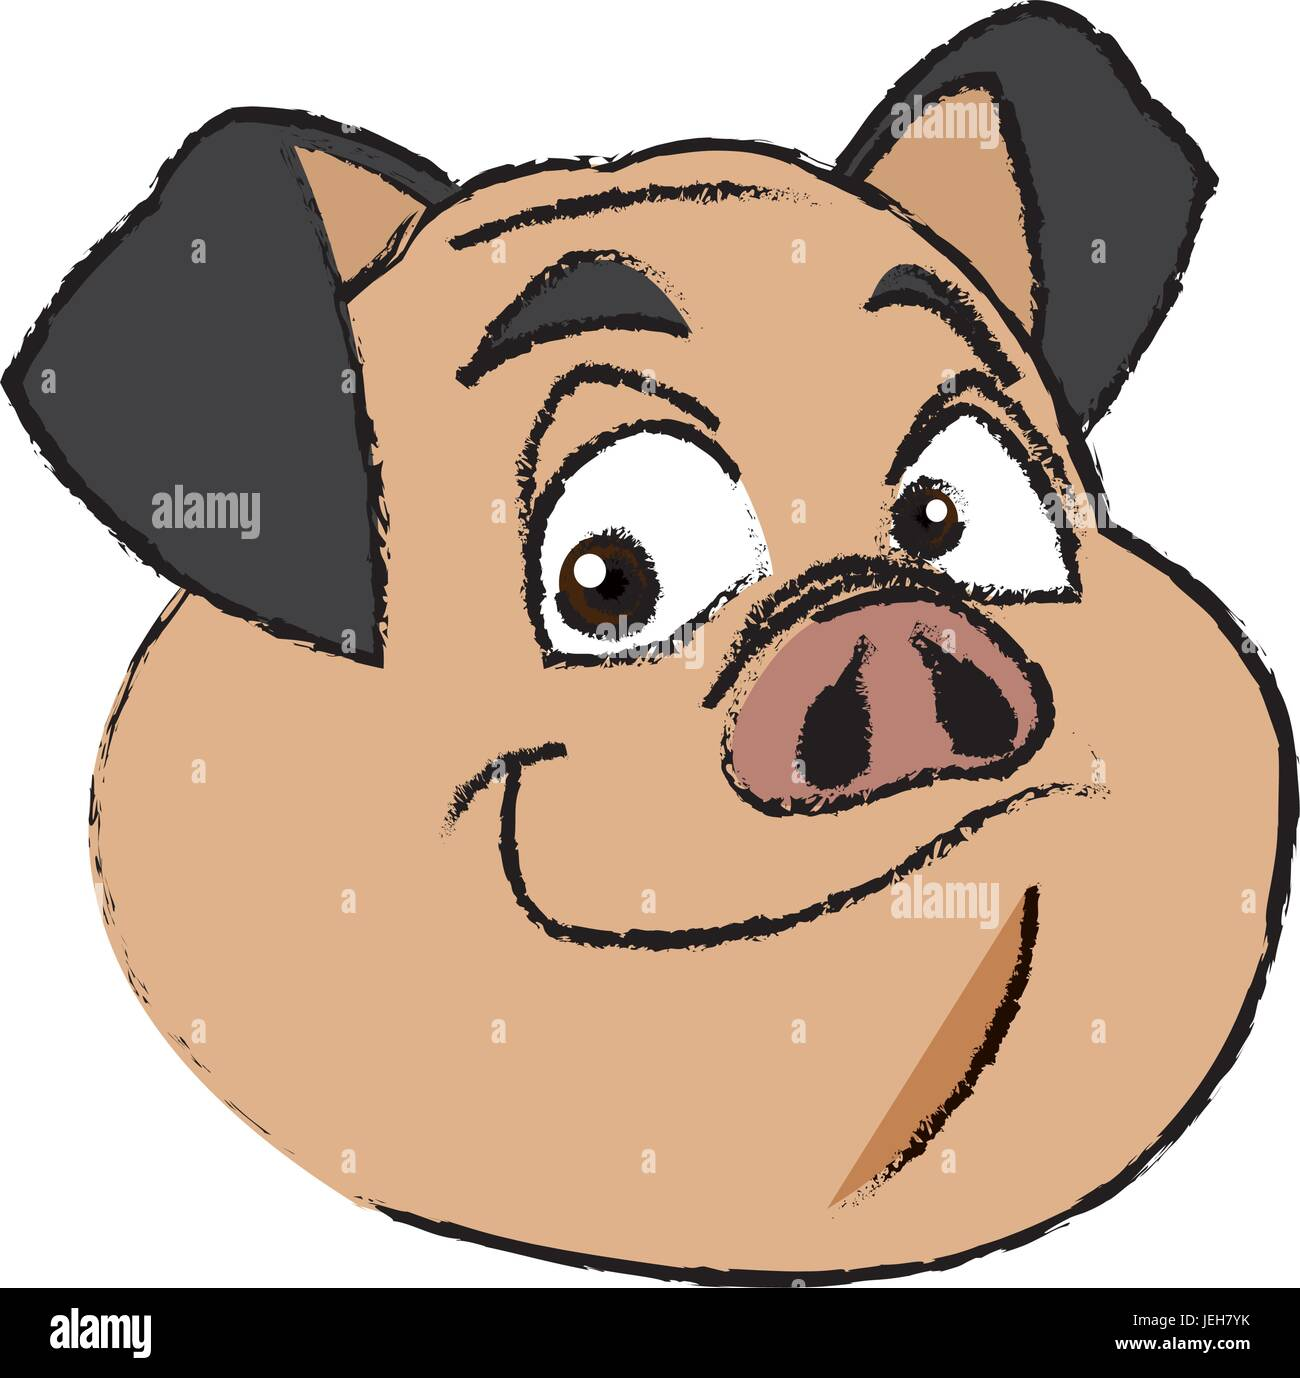 Smiling Pig Stock Photos Amp Smiling Pig Stock Images Alamy